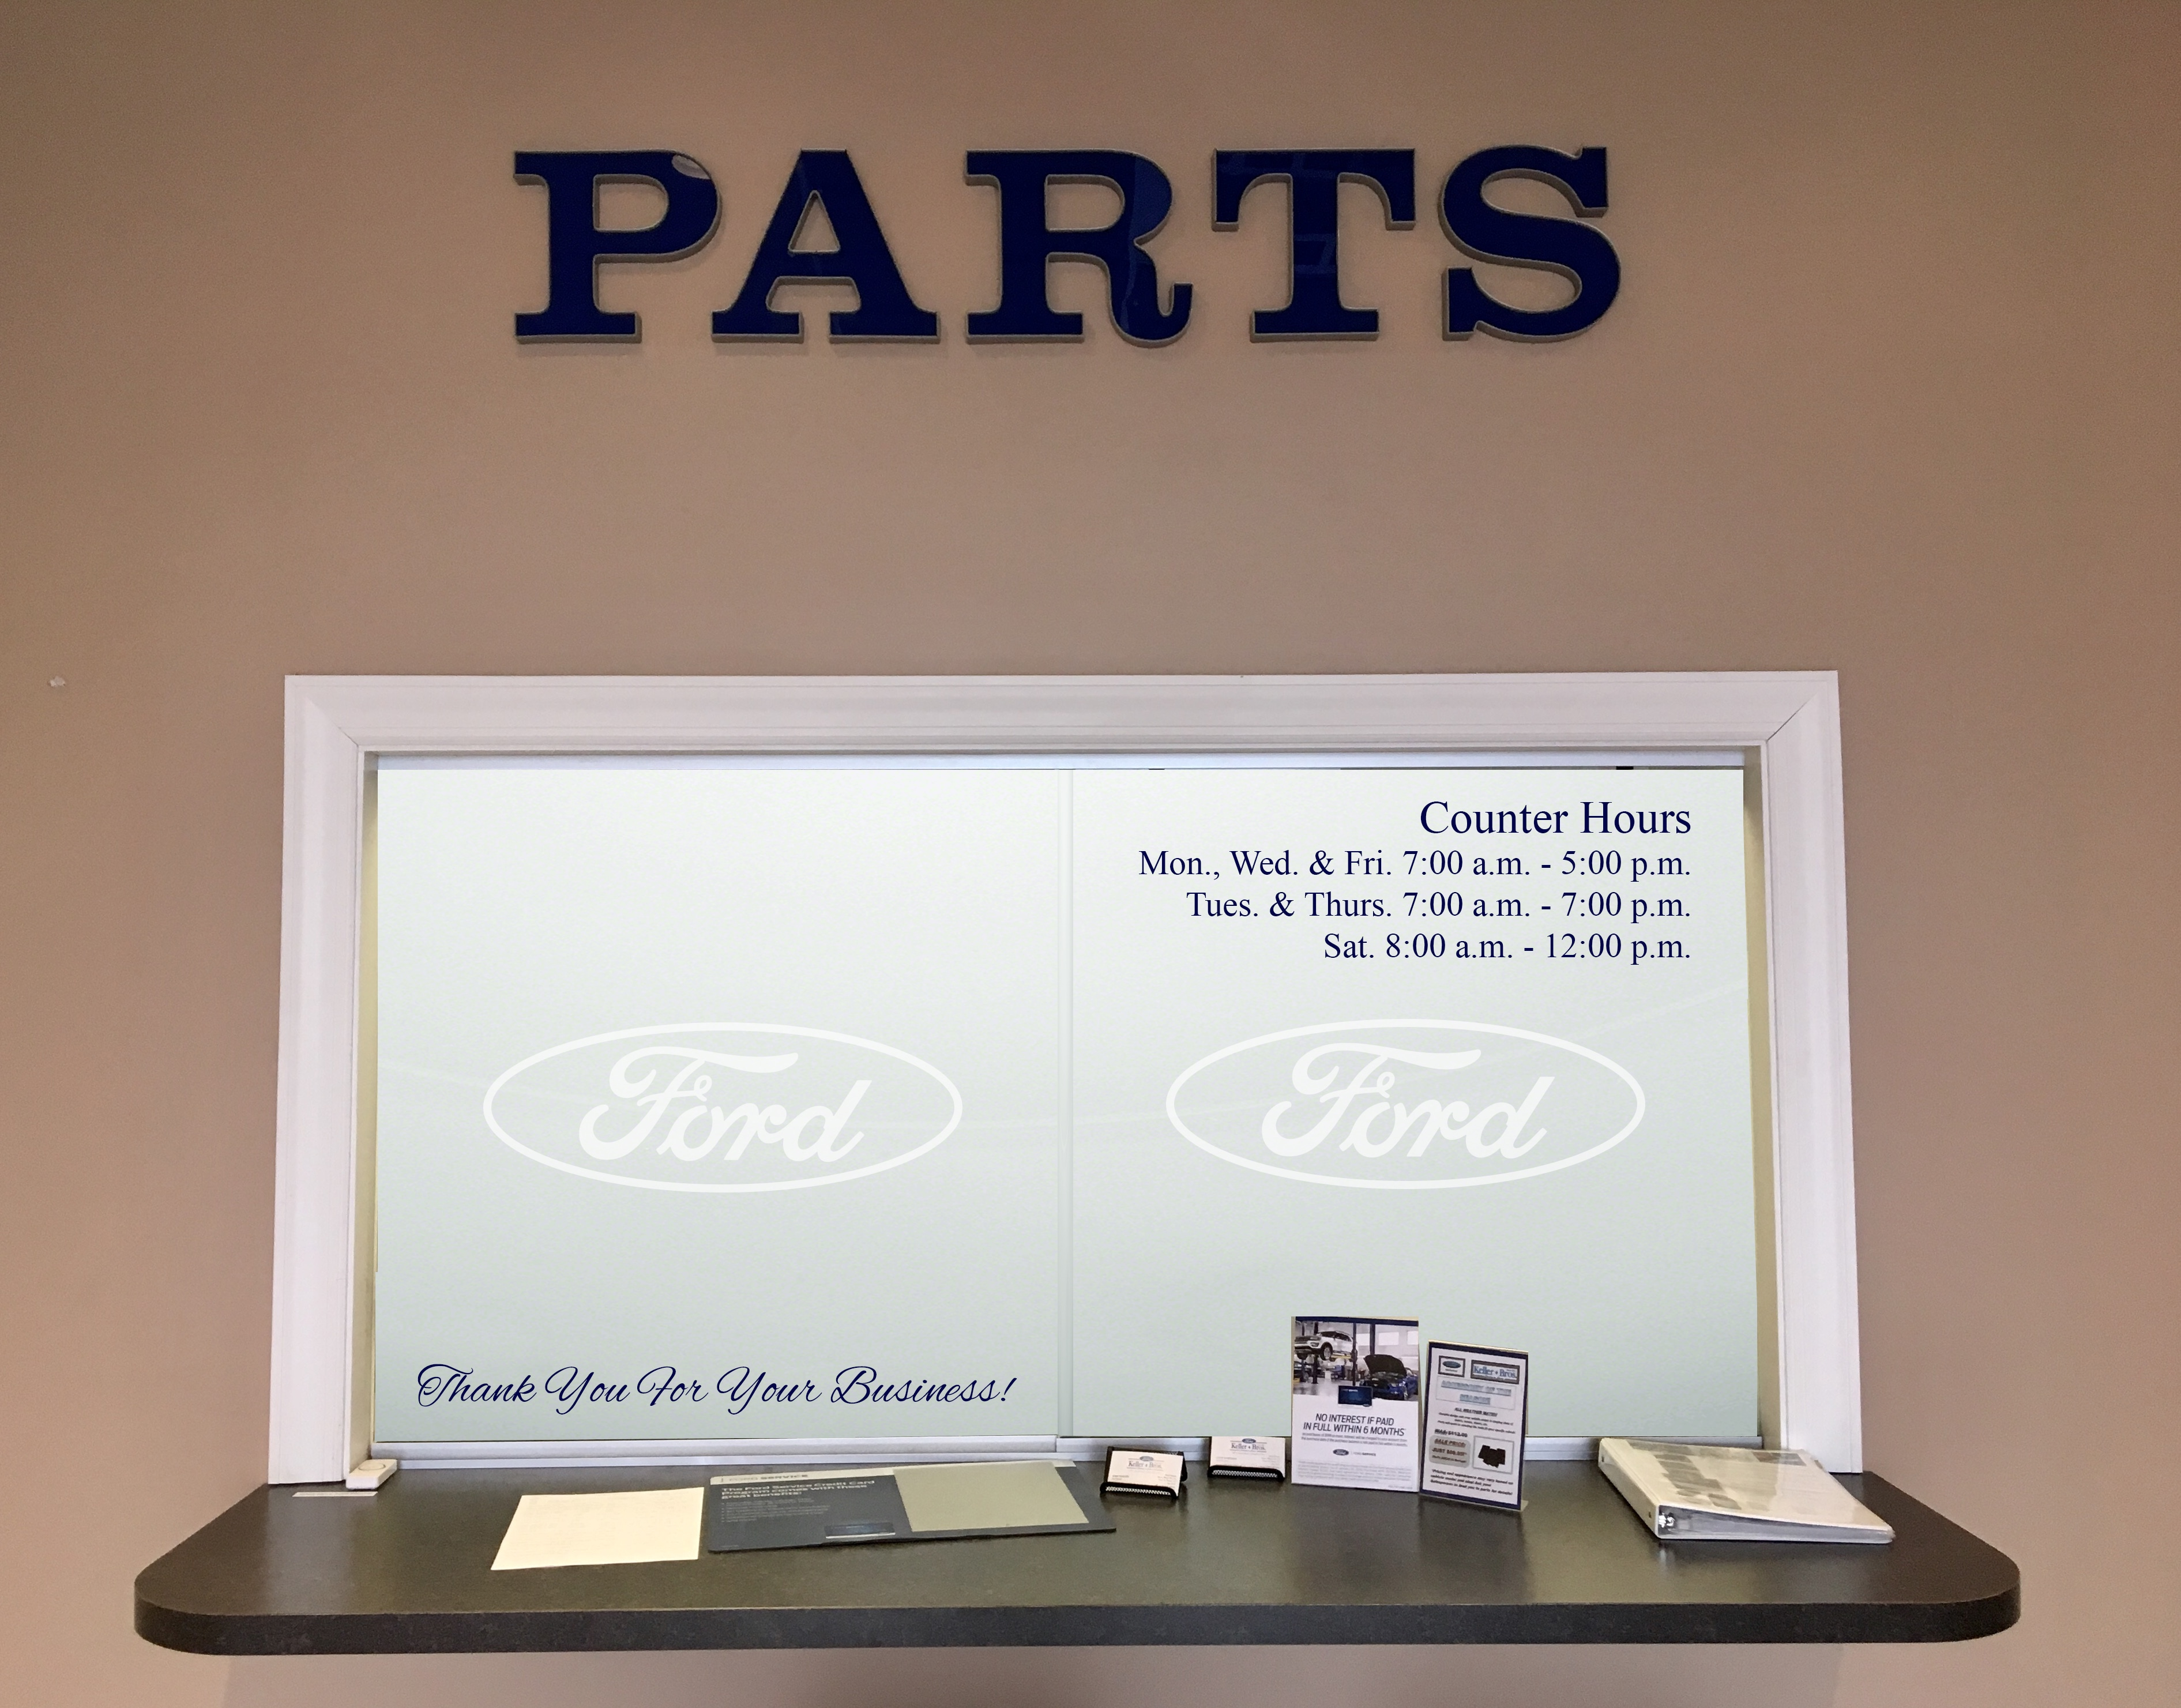 Certified oem ford parts and accessories in lititz pa